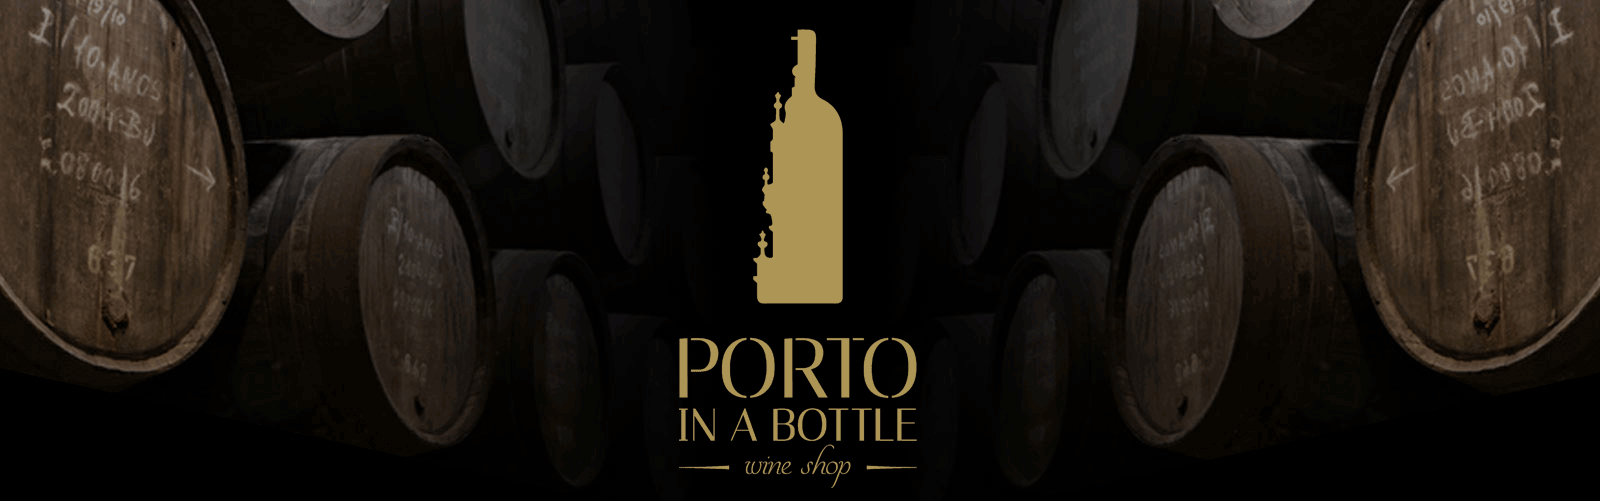 Porto In a Bottle